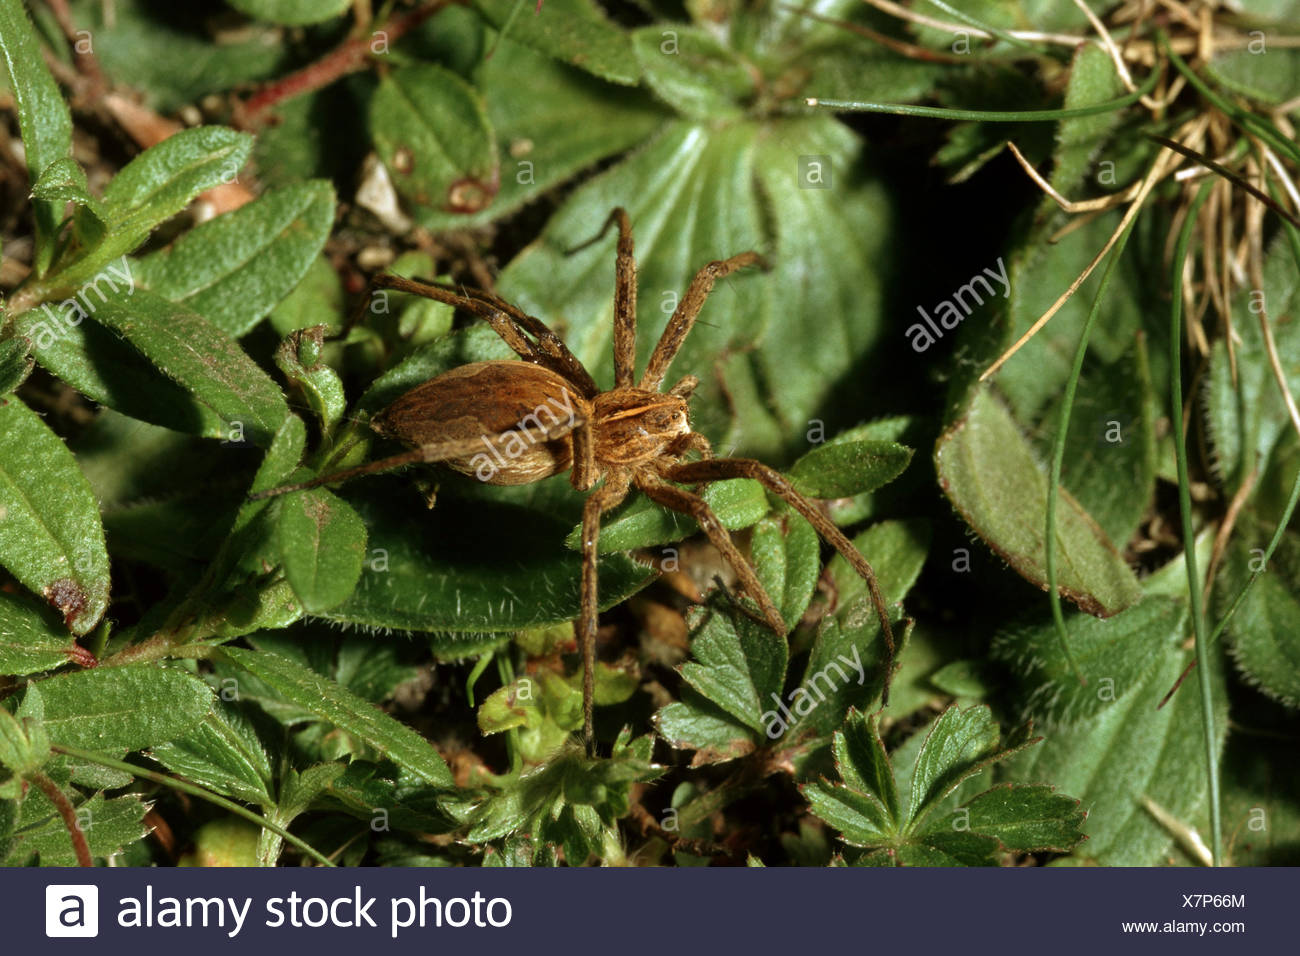 nursery web spider, fantastic fishing spider (Pisaura mirabilis), on a leaf, Germany - Stock Image